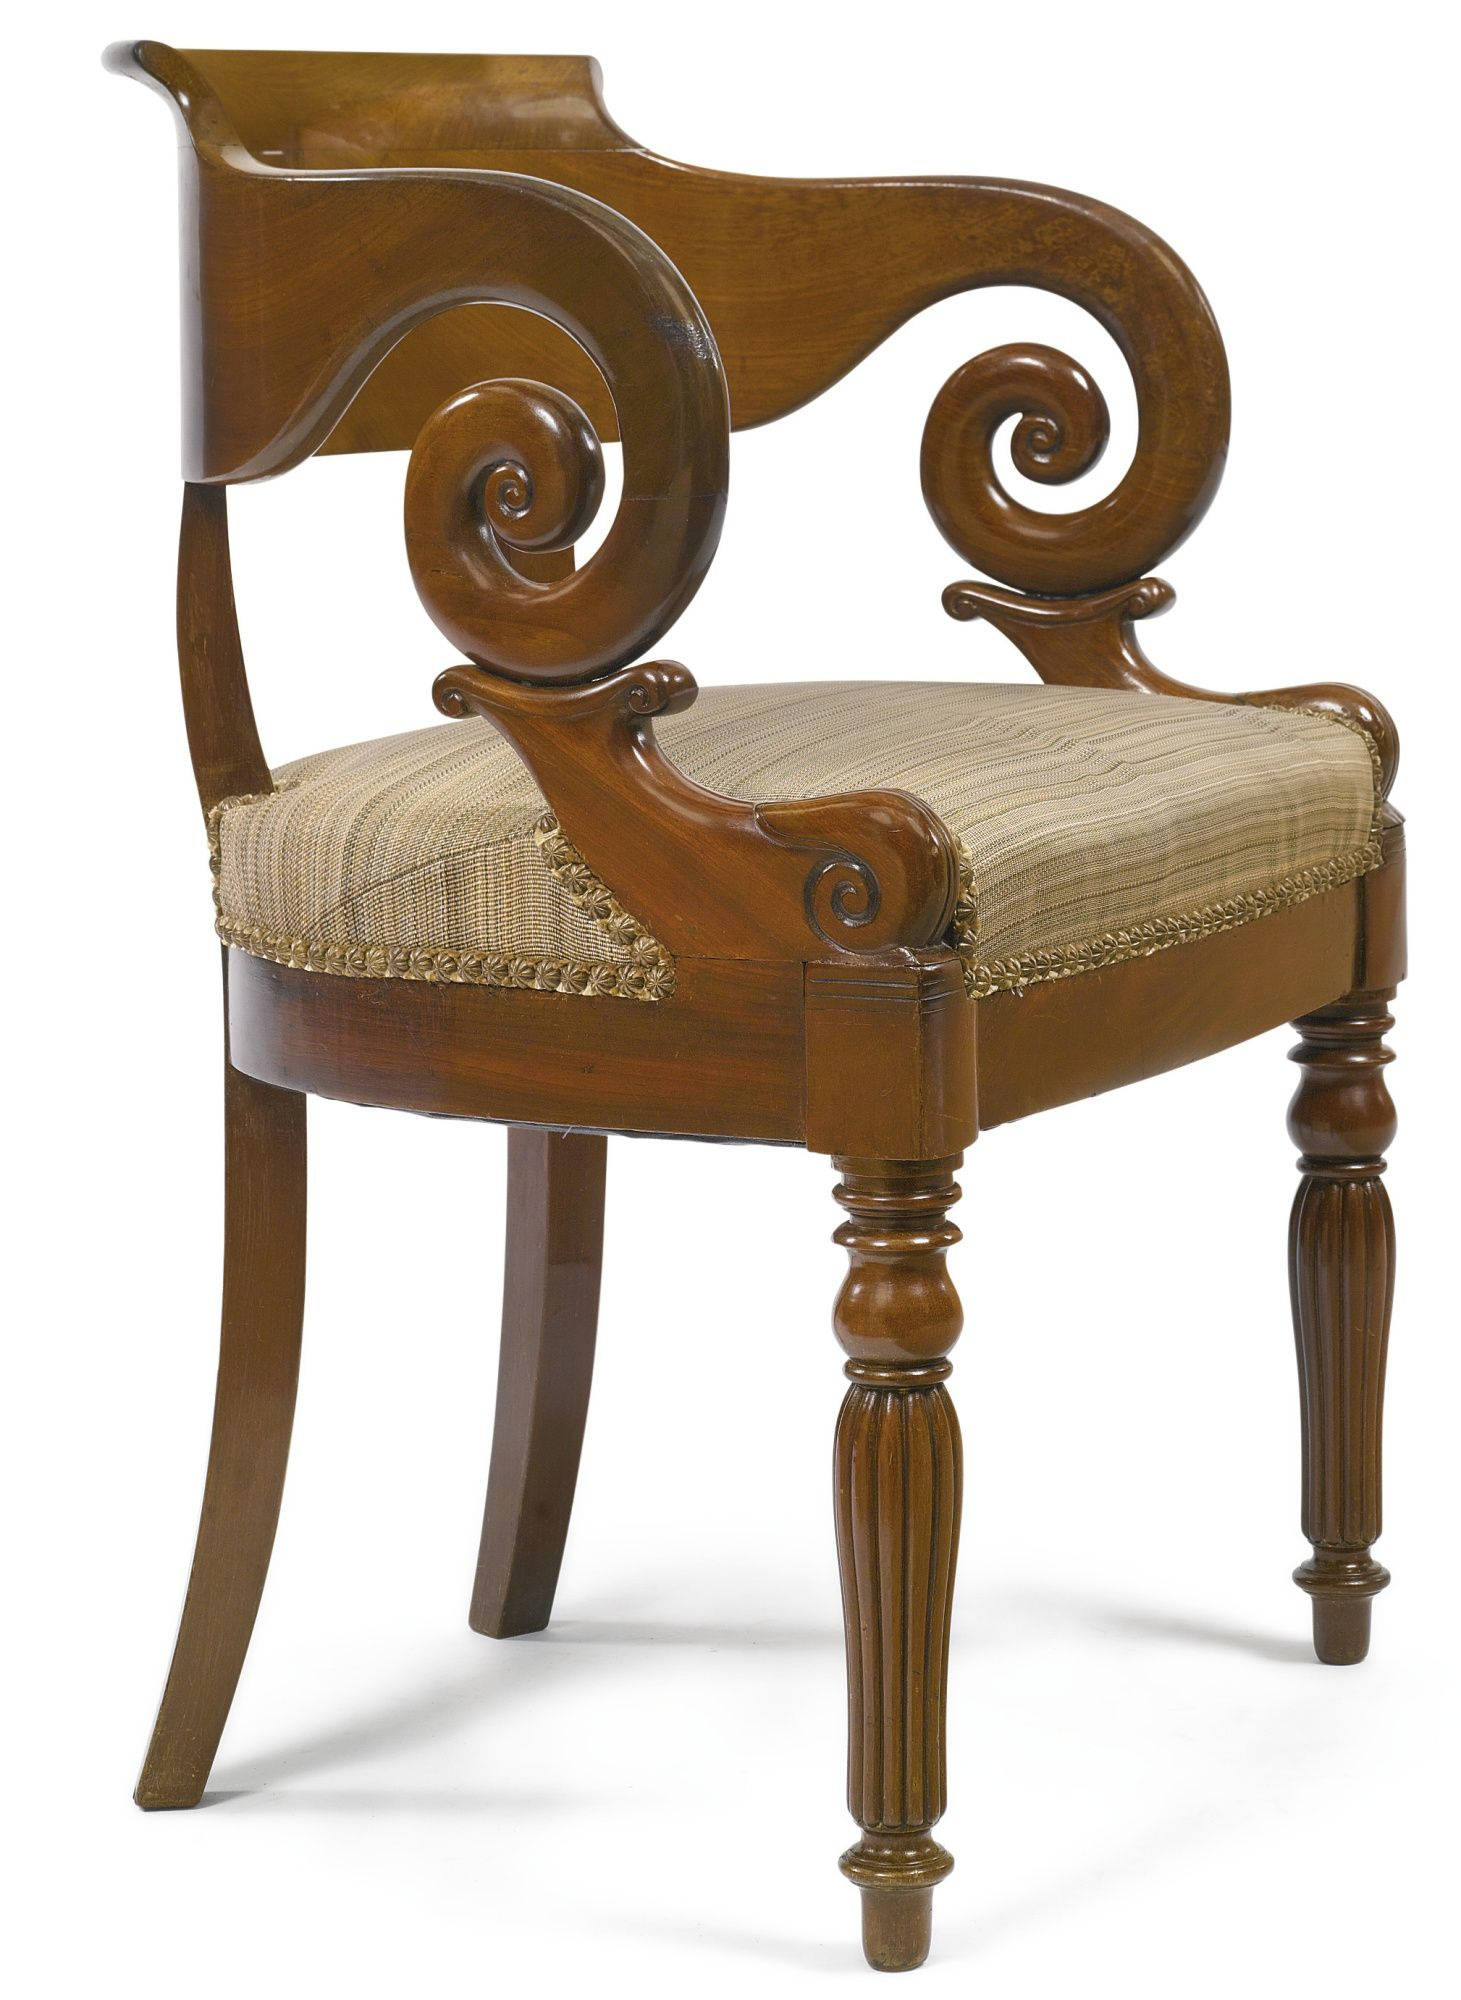 C1830 A Charles X Carved Mahogany Fauteuil Circa 1830 Estimate 500 700 Usd Lot Sold 813 Usd Hammer Price Wi Chaise Chair Fine Furniture Unique Furniture